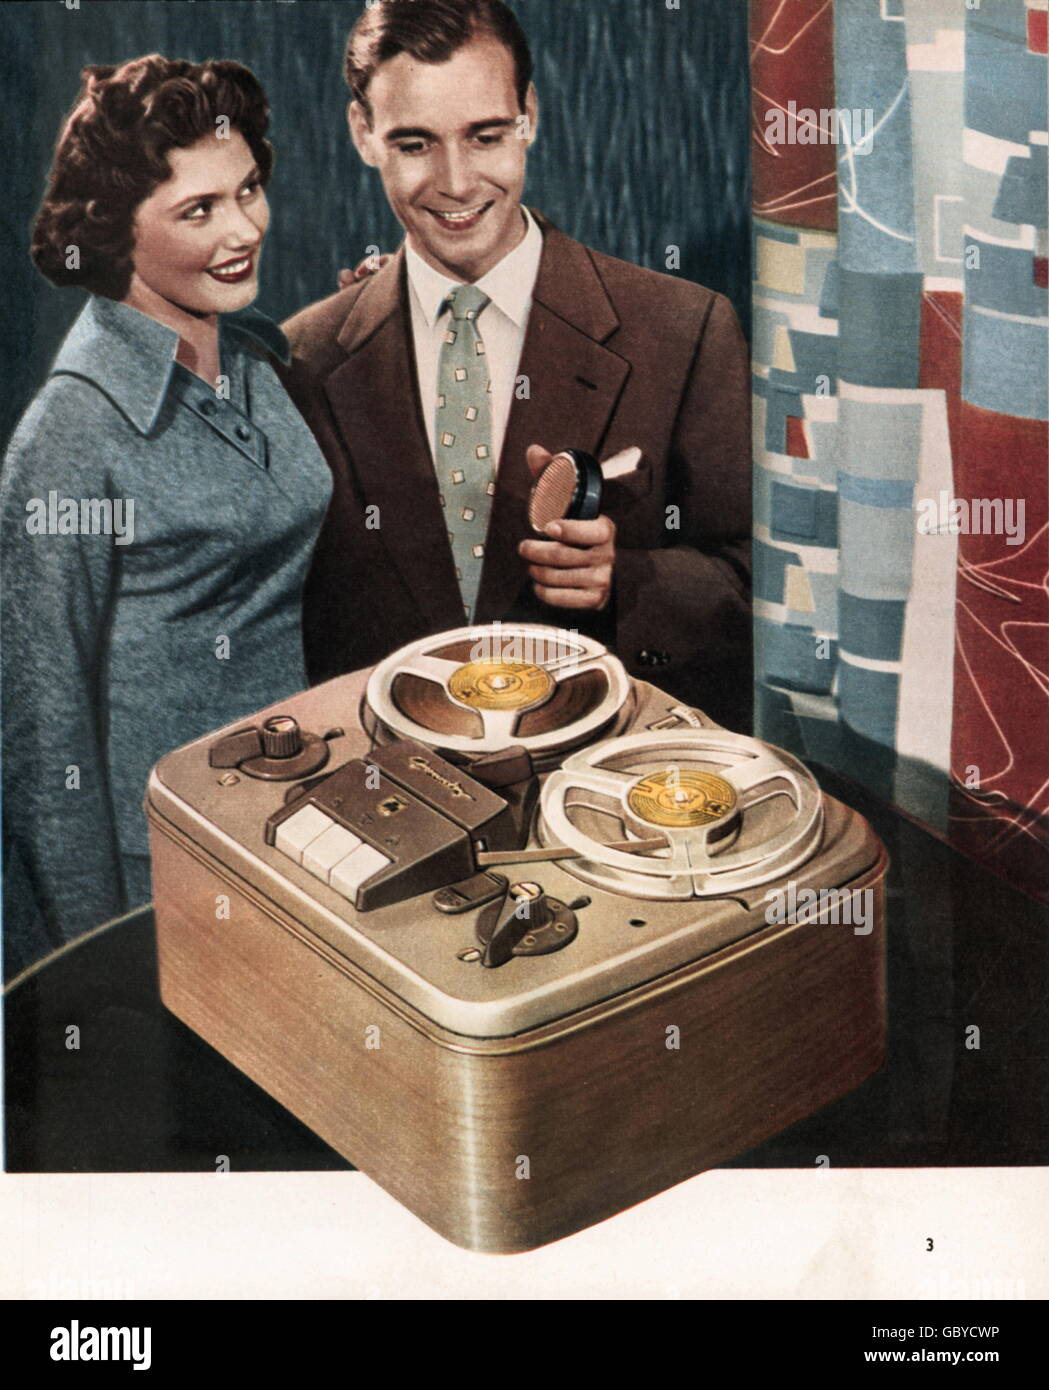 technics, tape recorders, advertising prospect for Grundig tape recorder and dictaphones, couple with tape recorder - Stock Image